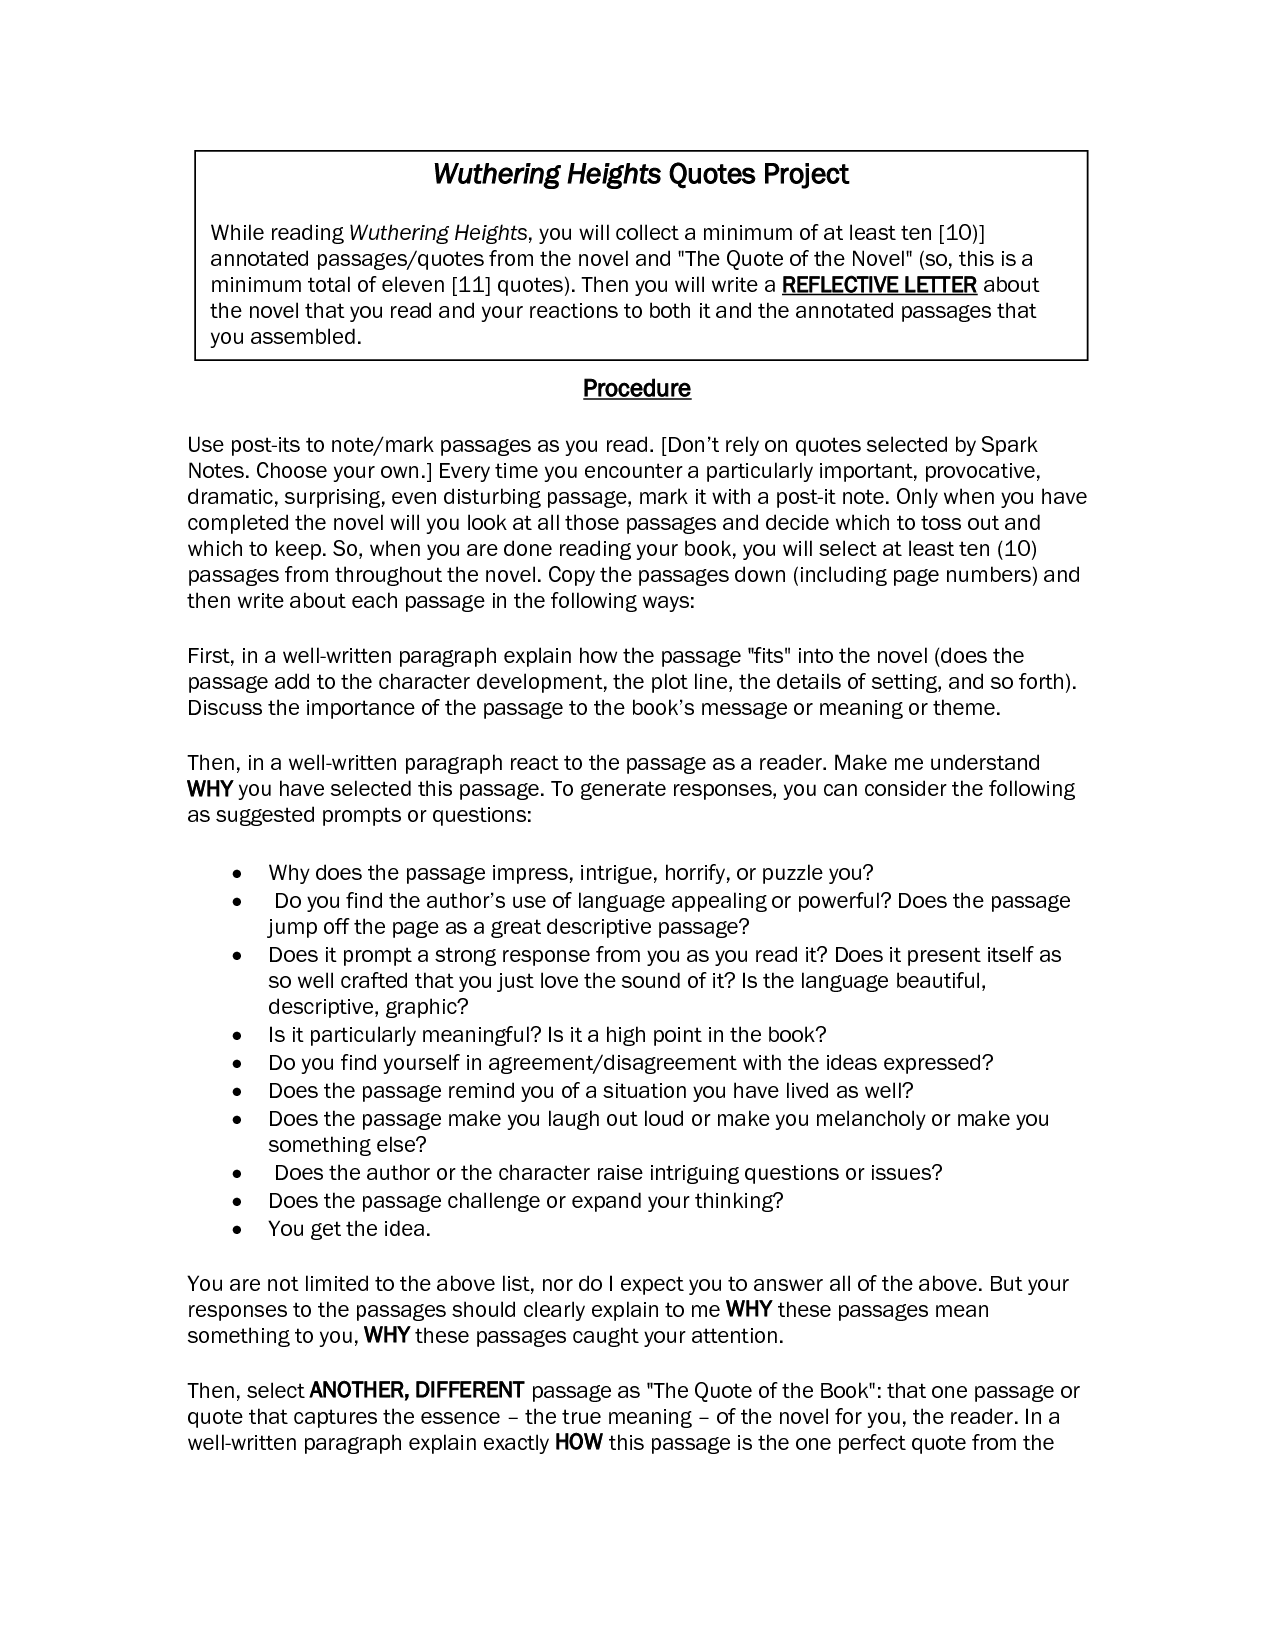 wuthering heights essay on setting For wuthering heights essay prompts and (essay #3: setting) wuthering heights is particularly notable for scoring guidelines for wuthering heights essays.